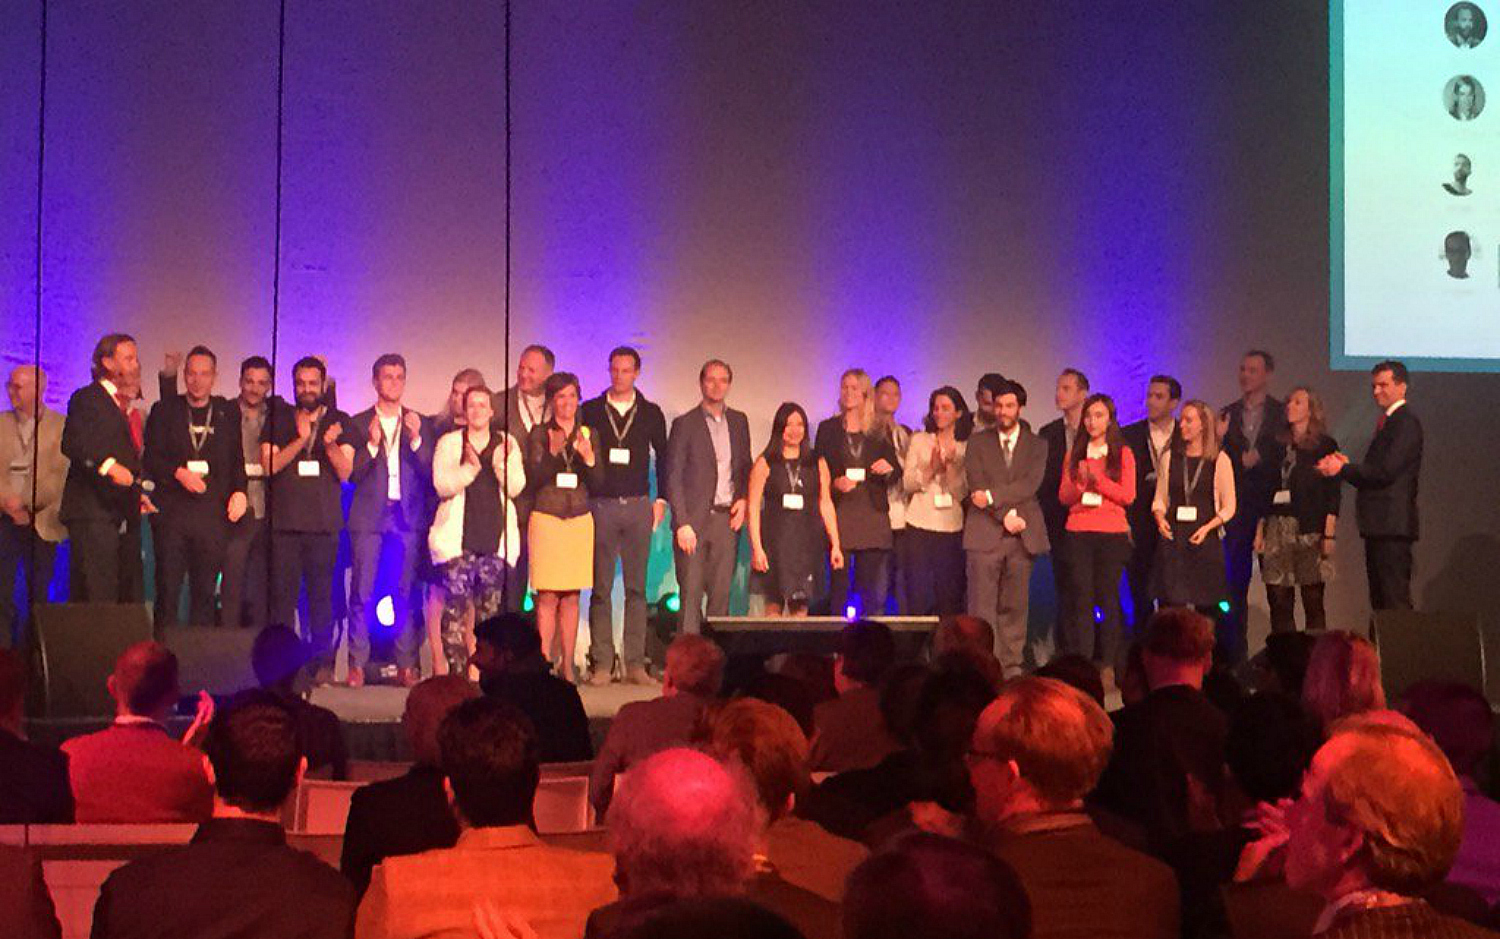 These 9 startups pitched during the Startupbootcamp HighTechXL Demo Day